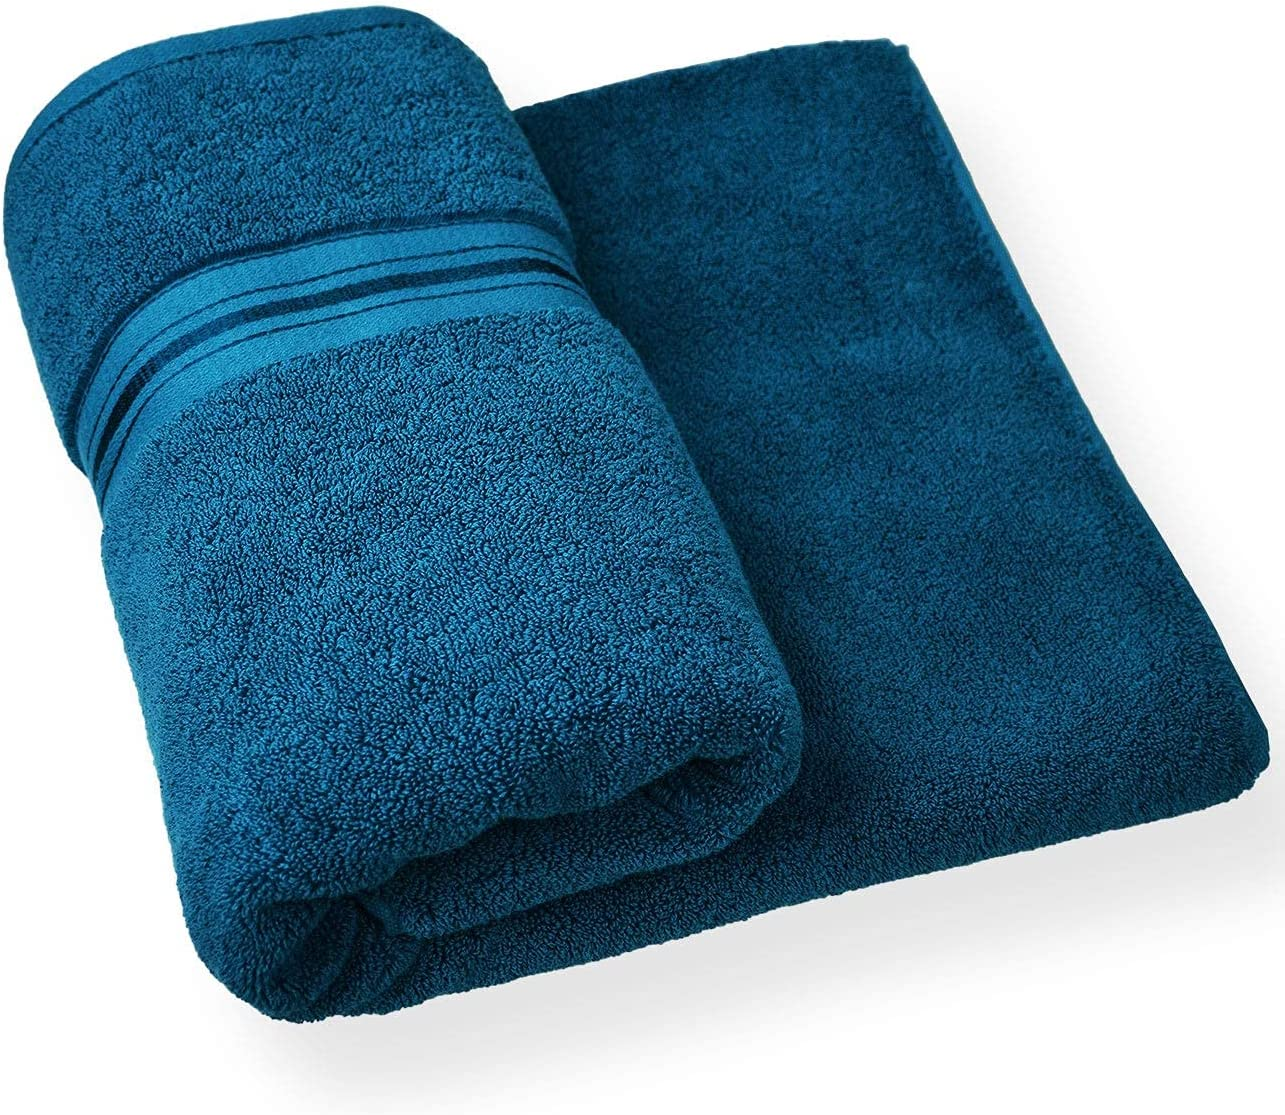 Cleanbear All Bombing free shipping Cotton Bath Towel Ba Long-awaited Heavy for Weight Shower